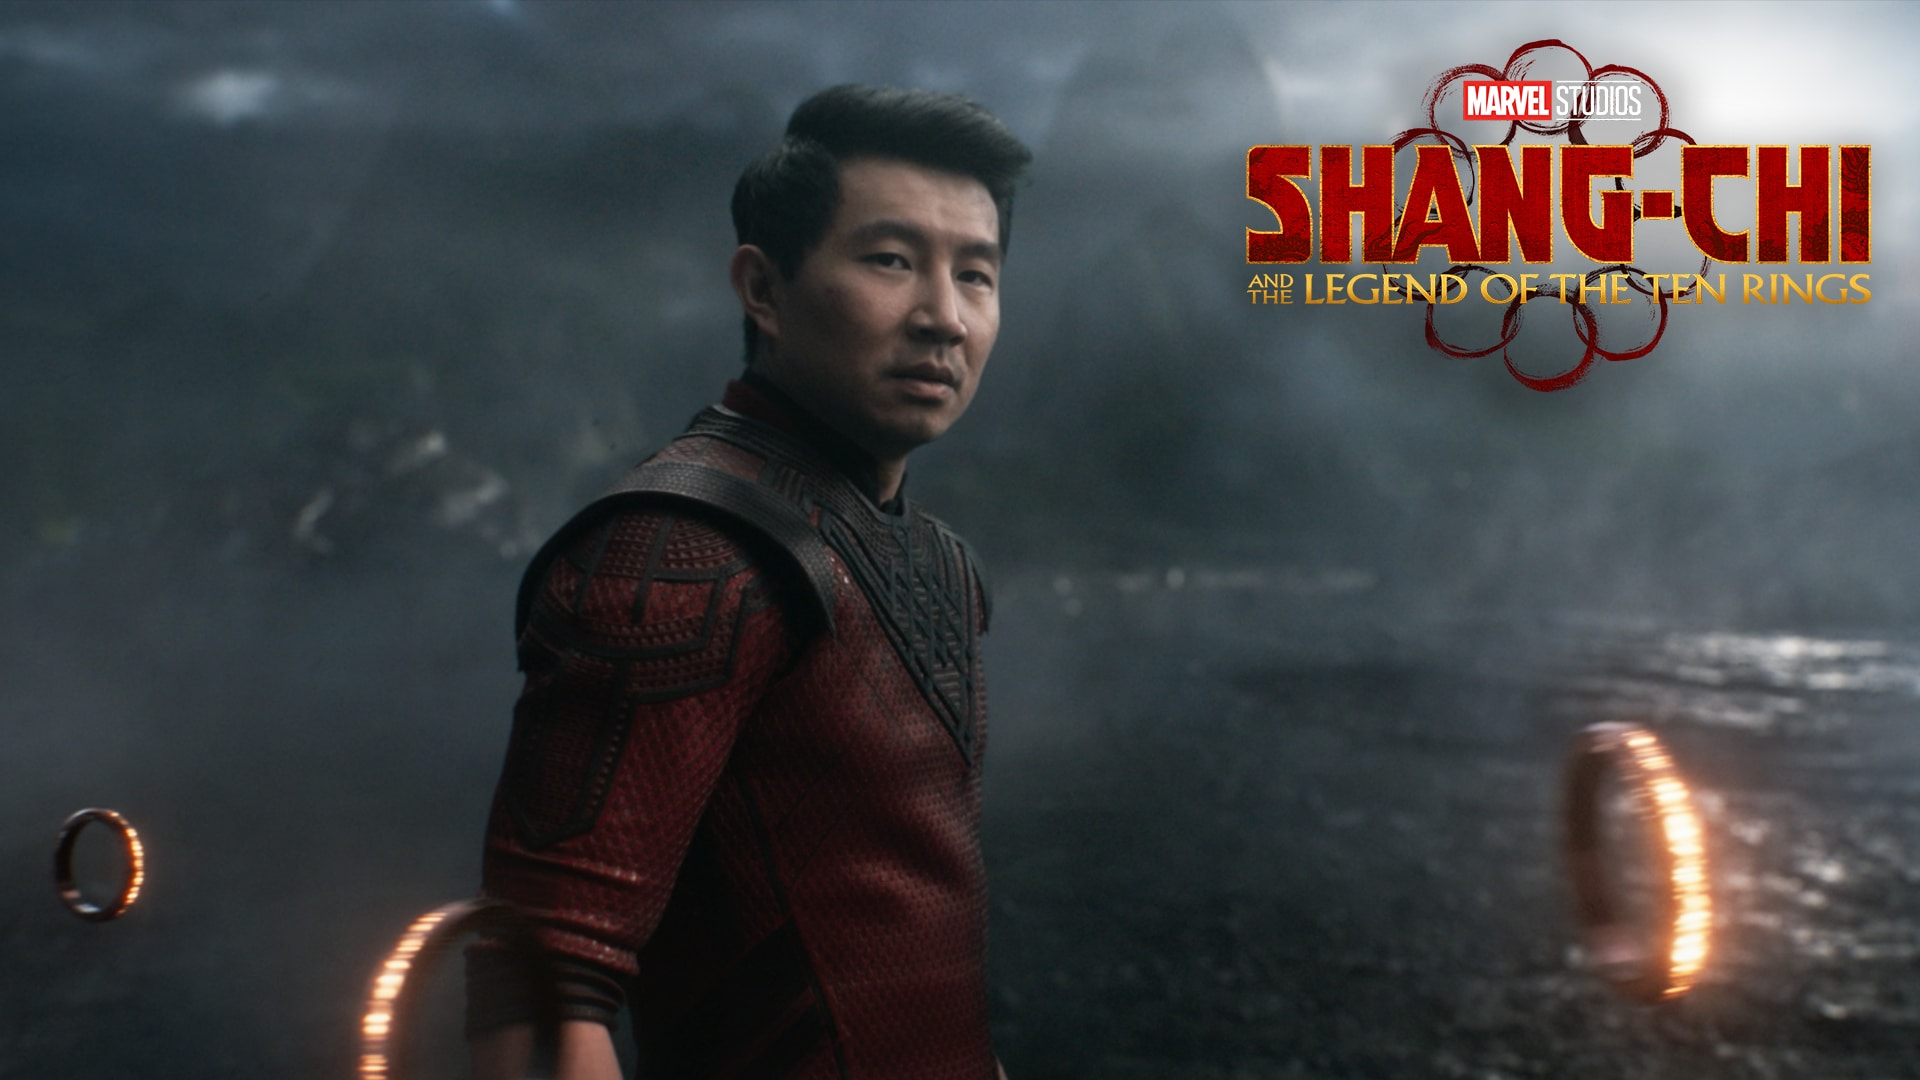 Need Marvel Studios Shang Chi and the Legend of the Ten Rings 1920x1080